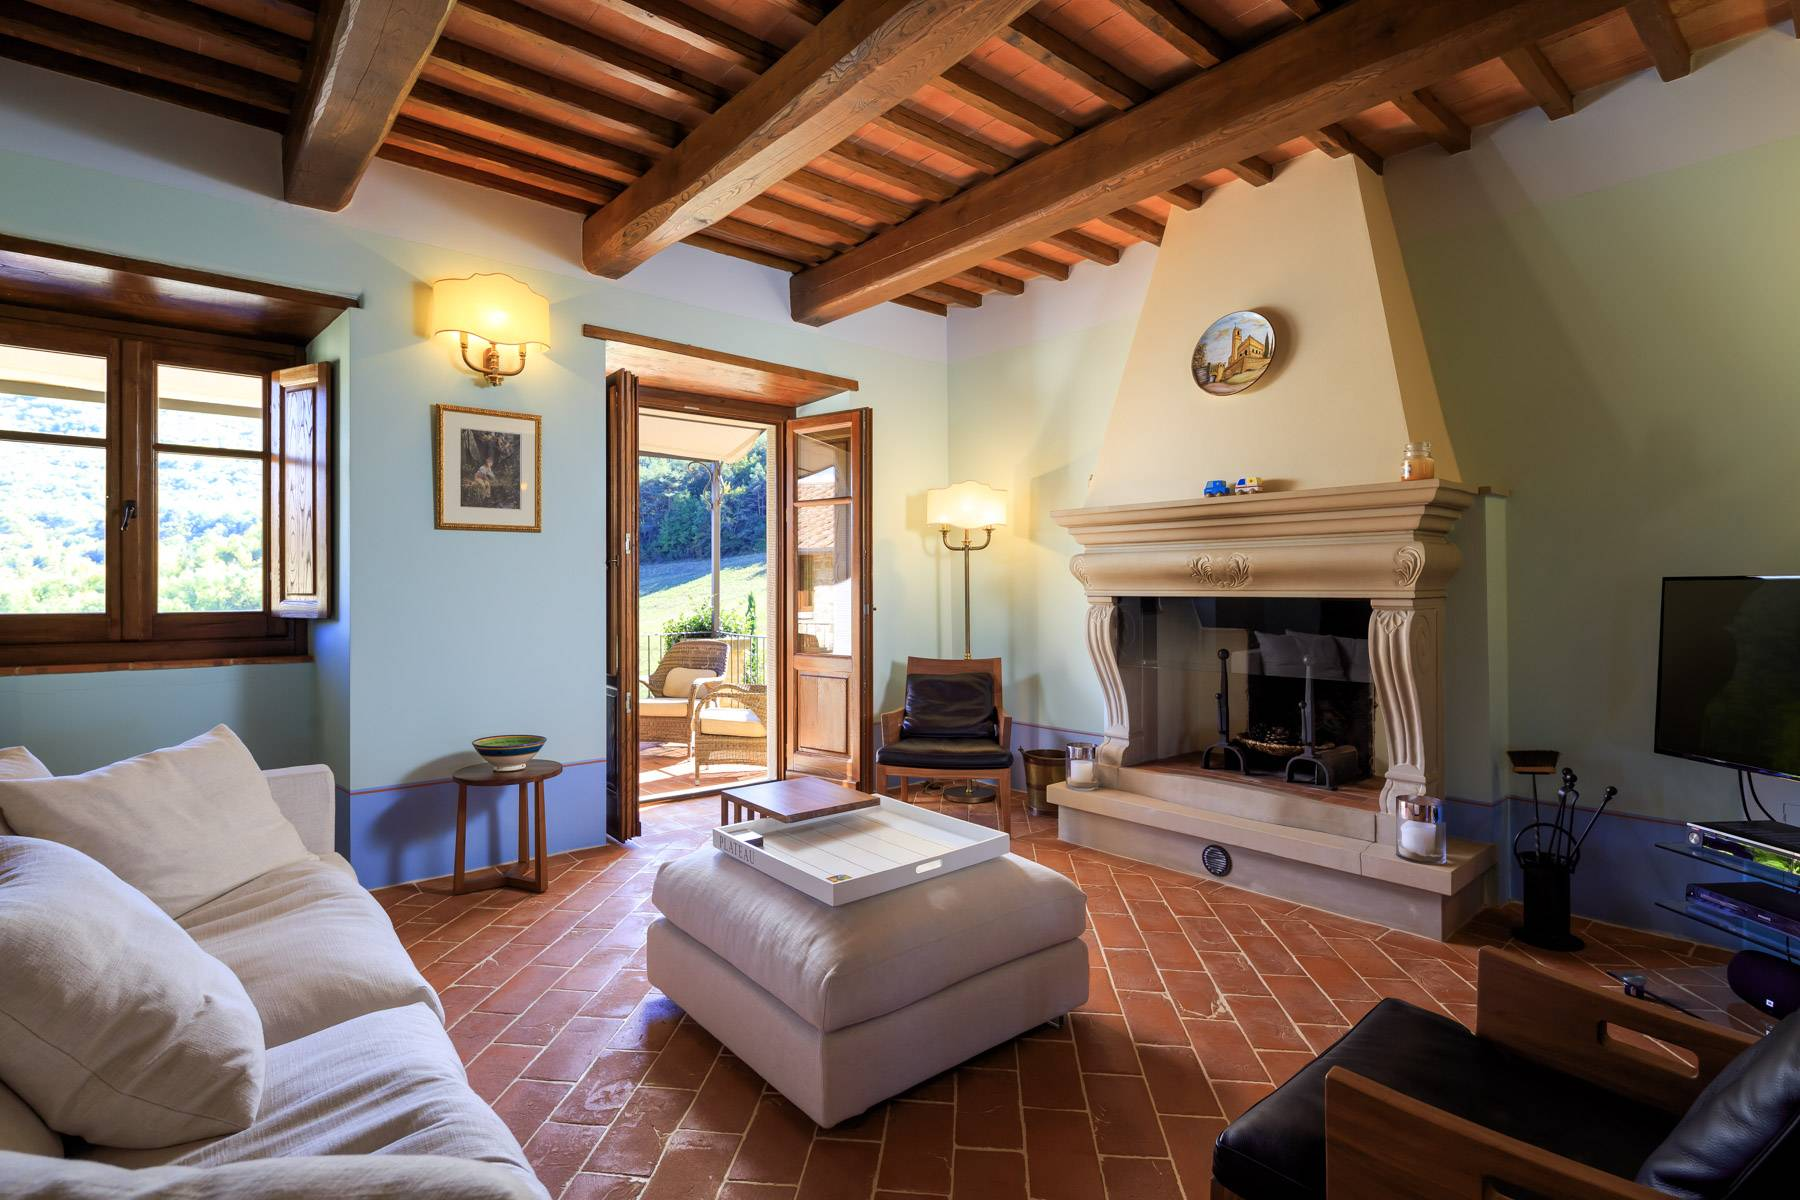 Marvelous estate with views over the Casentino valley - 23